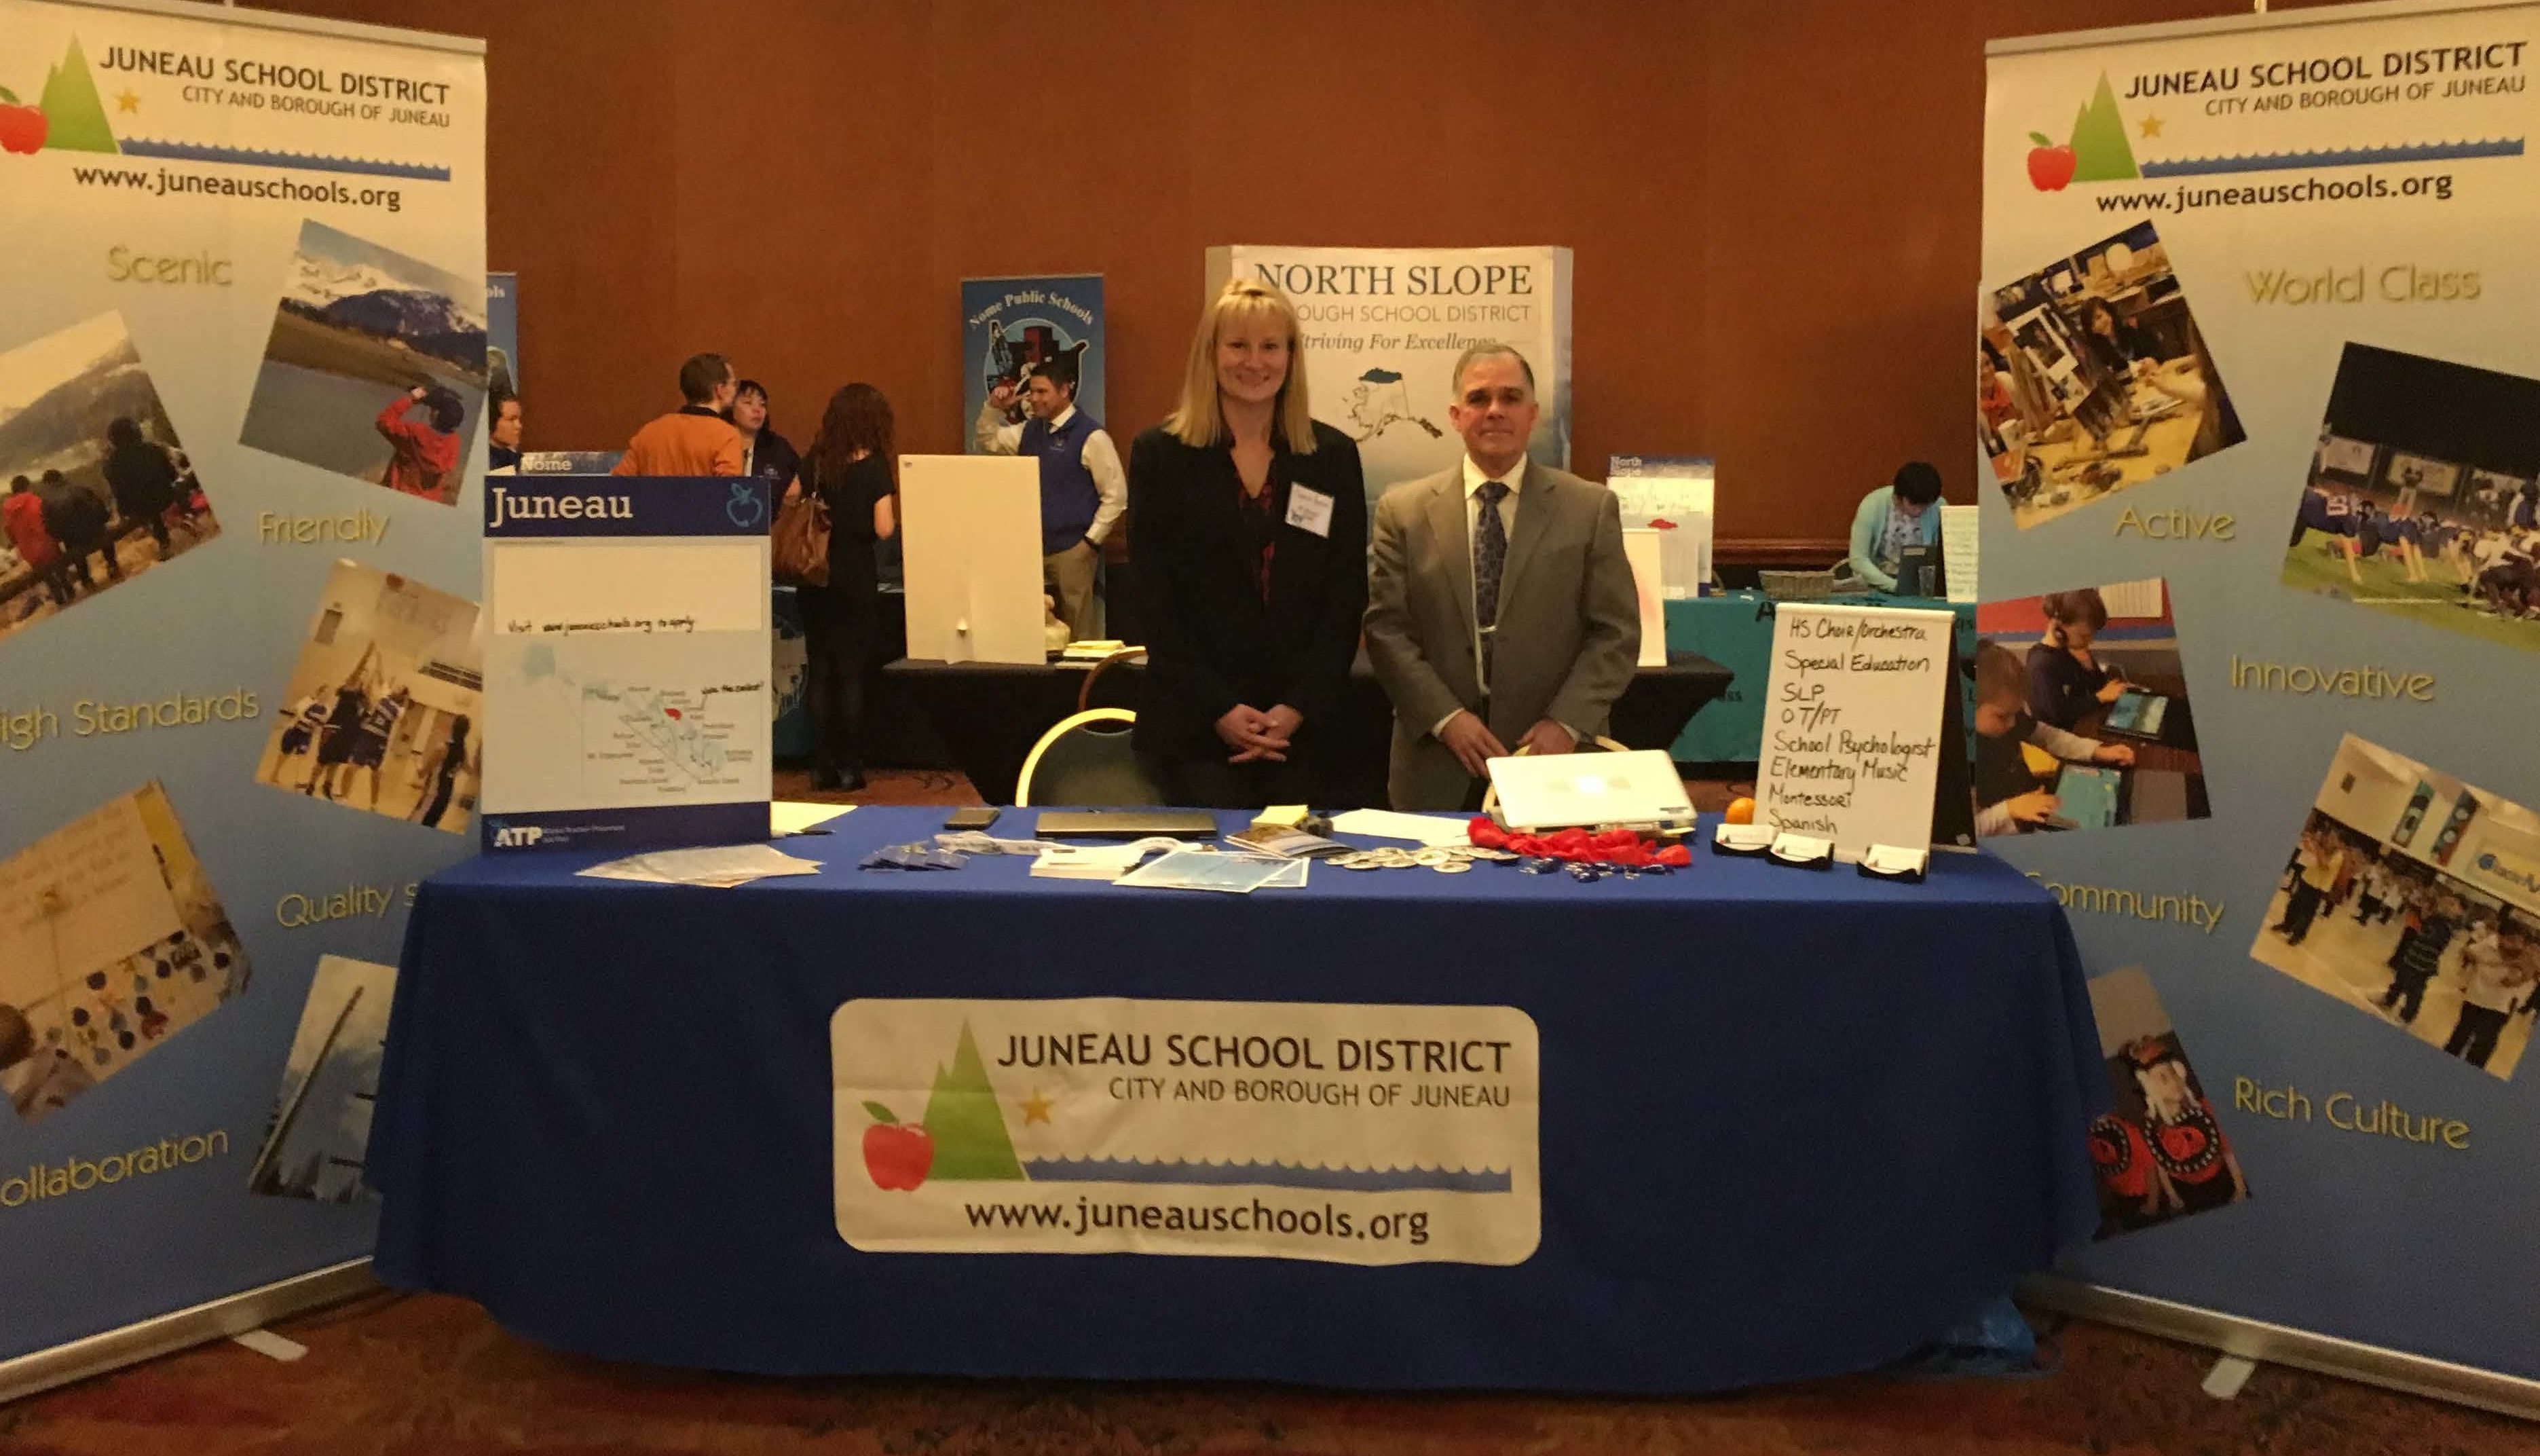 Juneau School District Human Resources Manager Cherish Hansen left, and recently retired Human Resources Director Ted VanBronkhorst at the Alaska Teacher Placement Job Fair in Anchorage, March 2017.